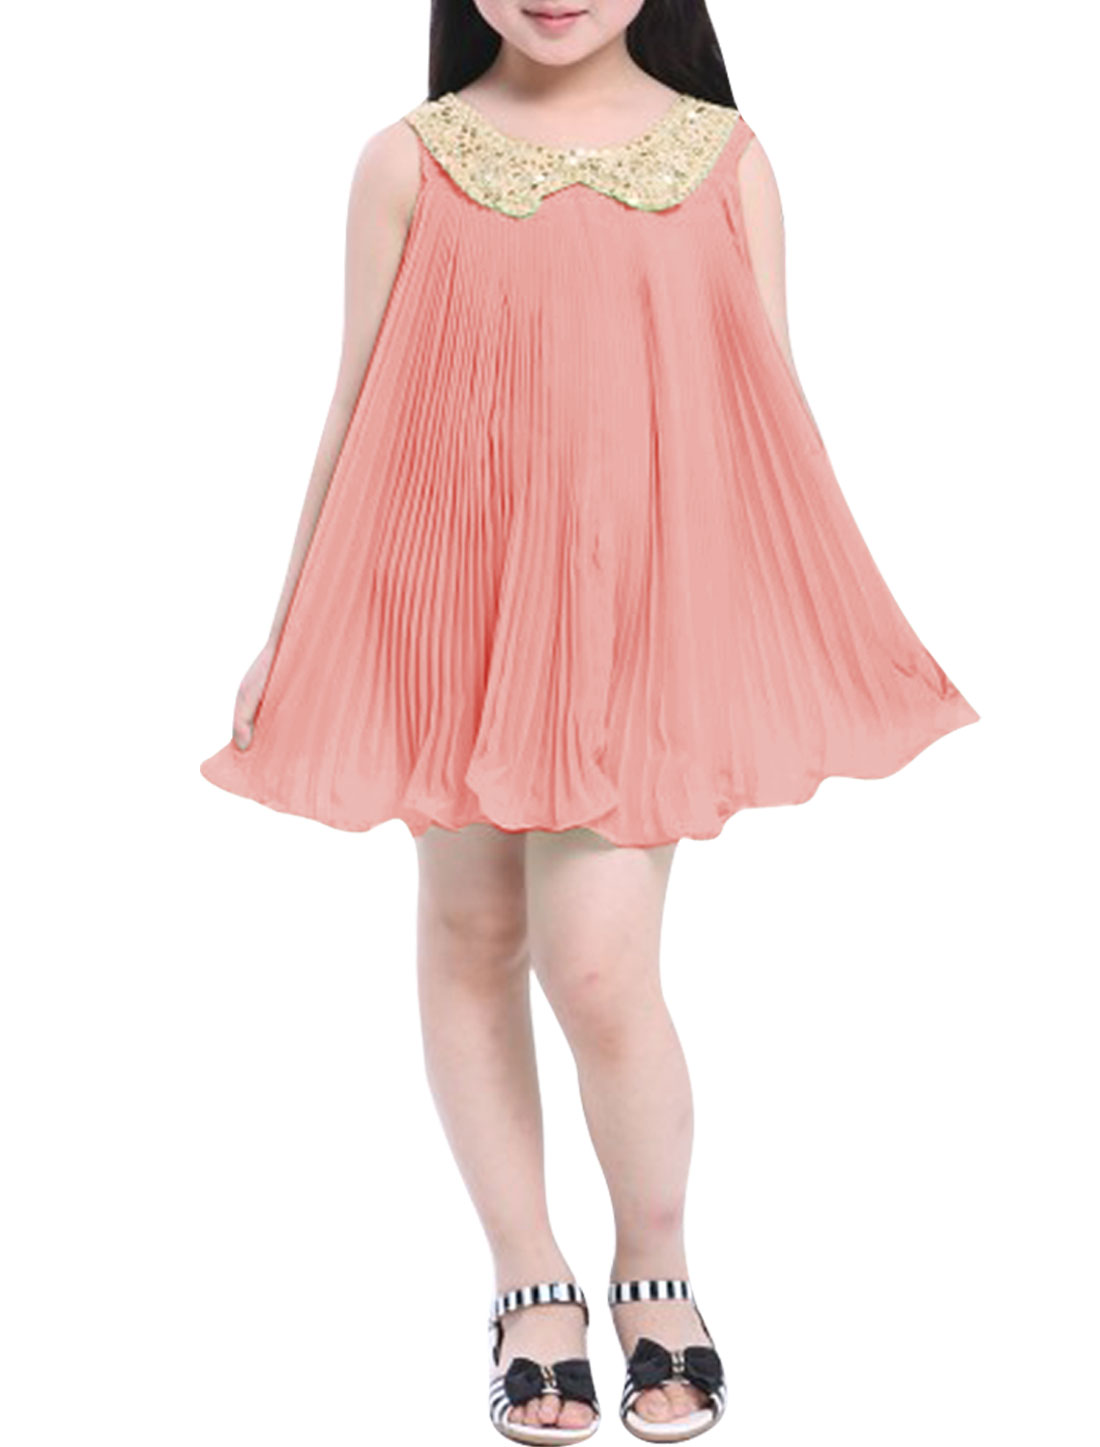 Girl Lovely Peter Pan Collar Sleeveless Pink Pleated Babydoll Dress 12